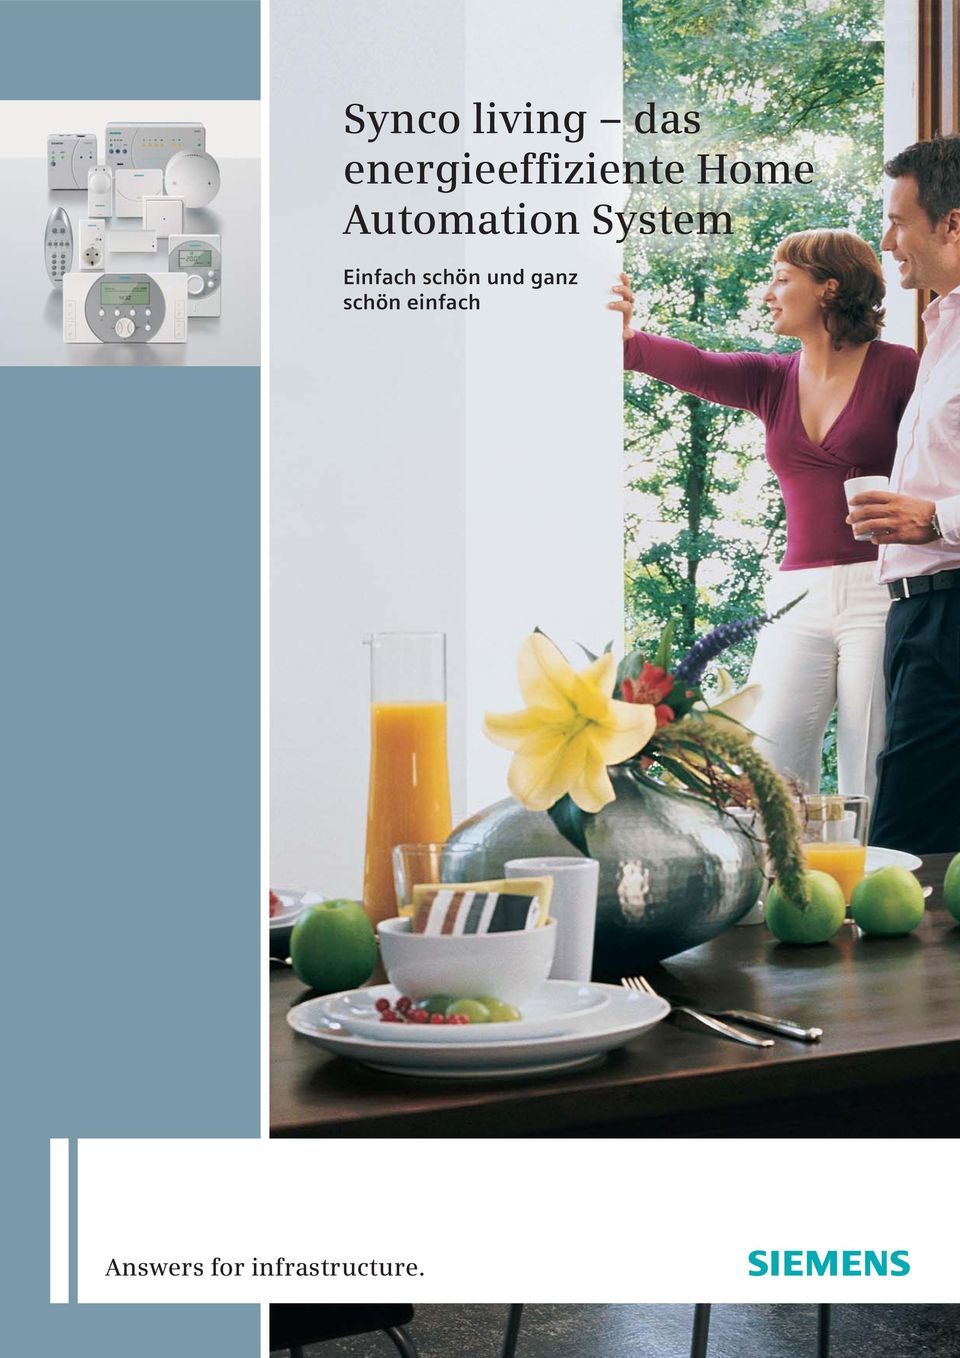 Automation System Einfach